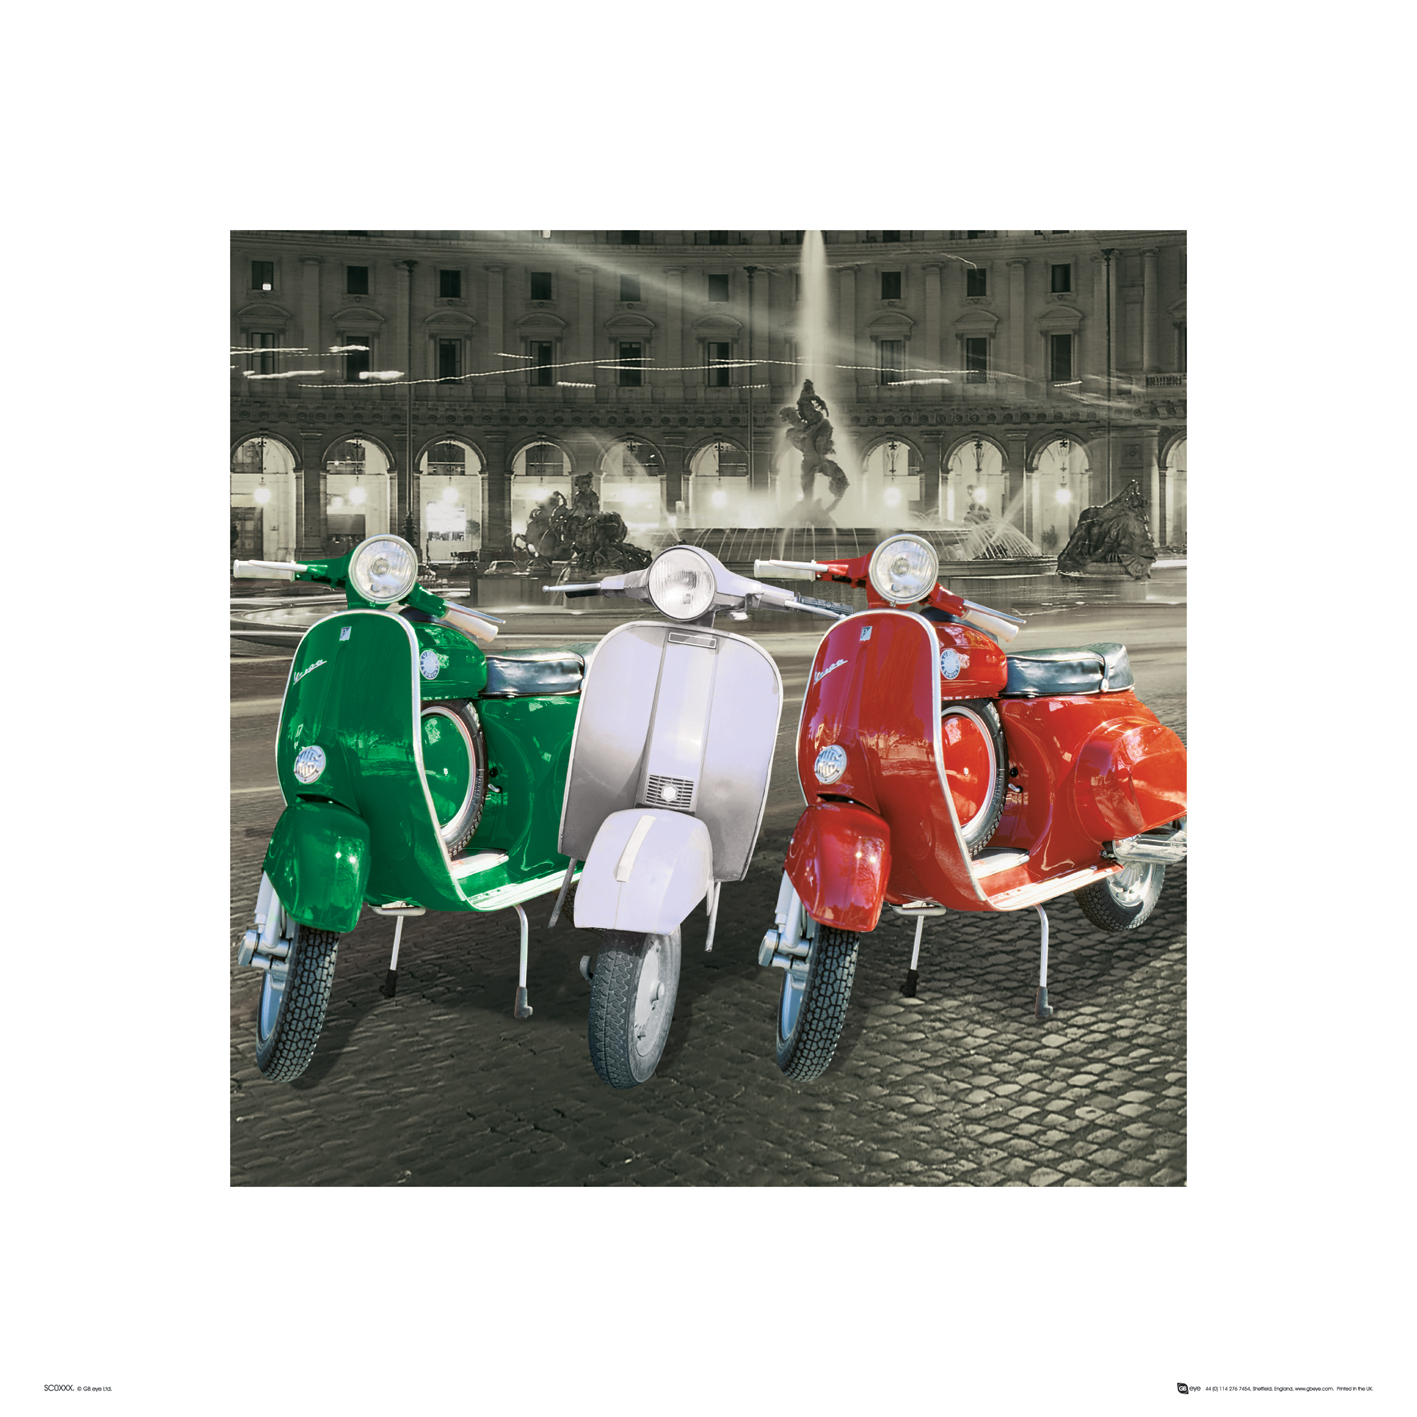 italien vespas italien flagge kunstdruck 40x40. Black Bedroom Furniture Sets. Home Design Ideas